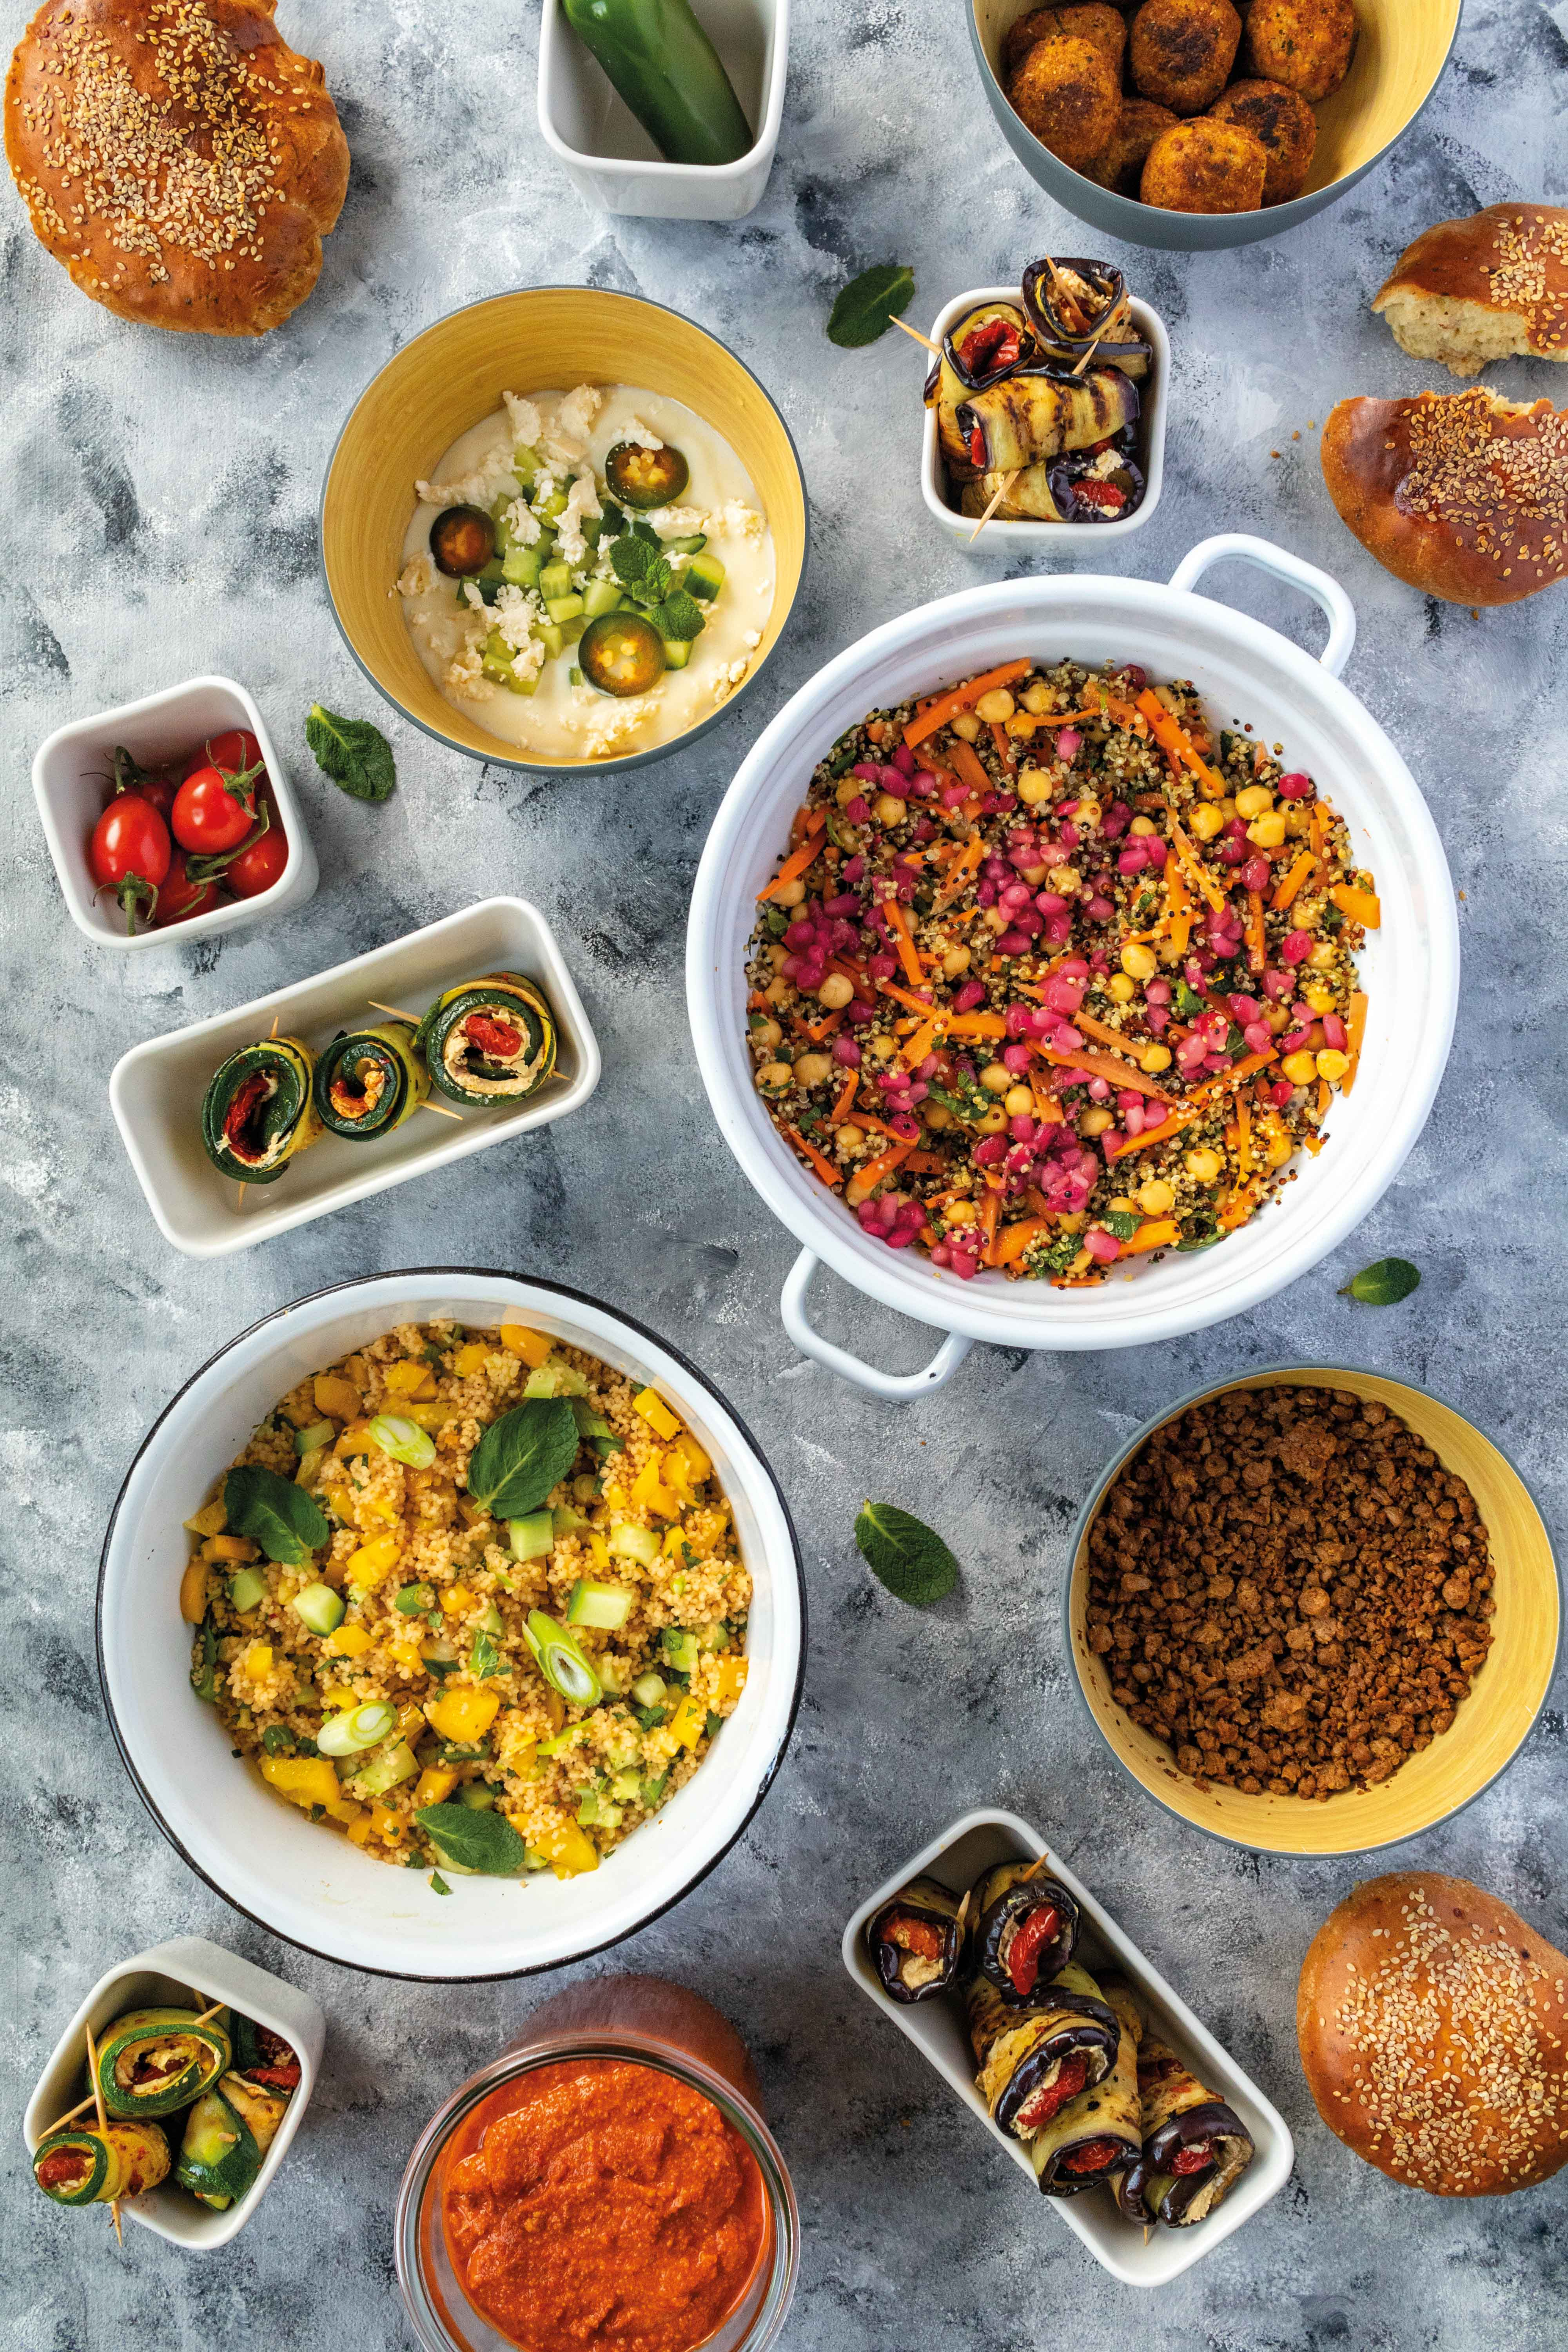 Orientalische Mezze: Couscous-Salat mit vegetarischem Hack und gefüllten Zucchini // Oriental Mezze with couscous Salad, vegetarian  ground meat and courgettes by https://babyrockmyday.com/mezze-mit-couscous-salat-und-gefuellten-zucchini/